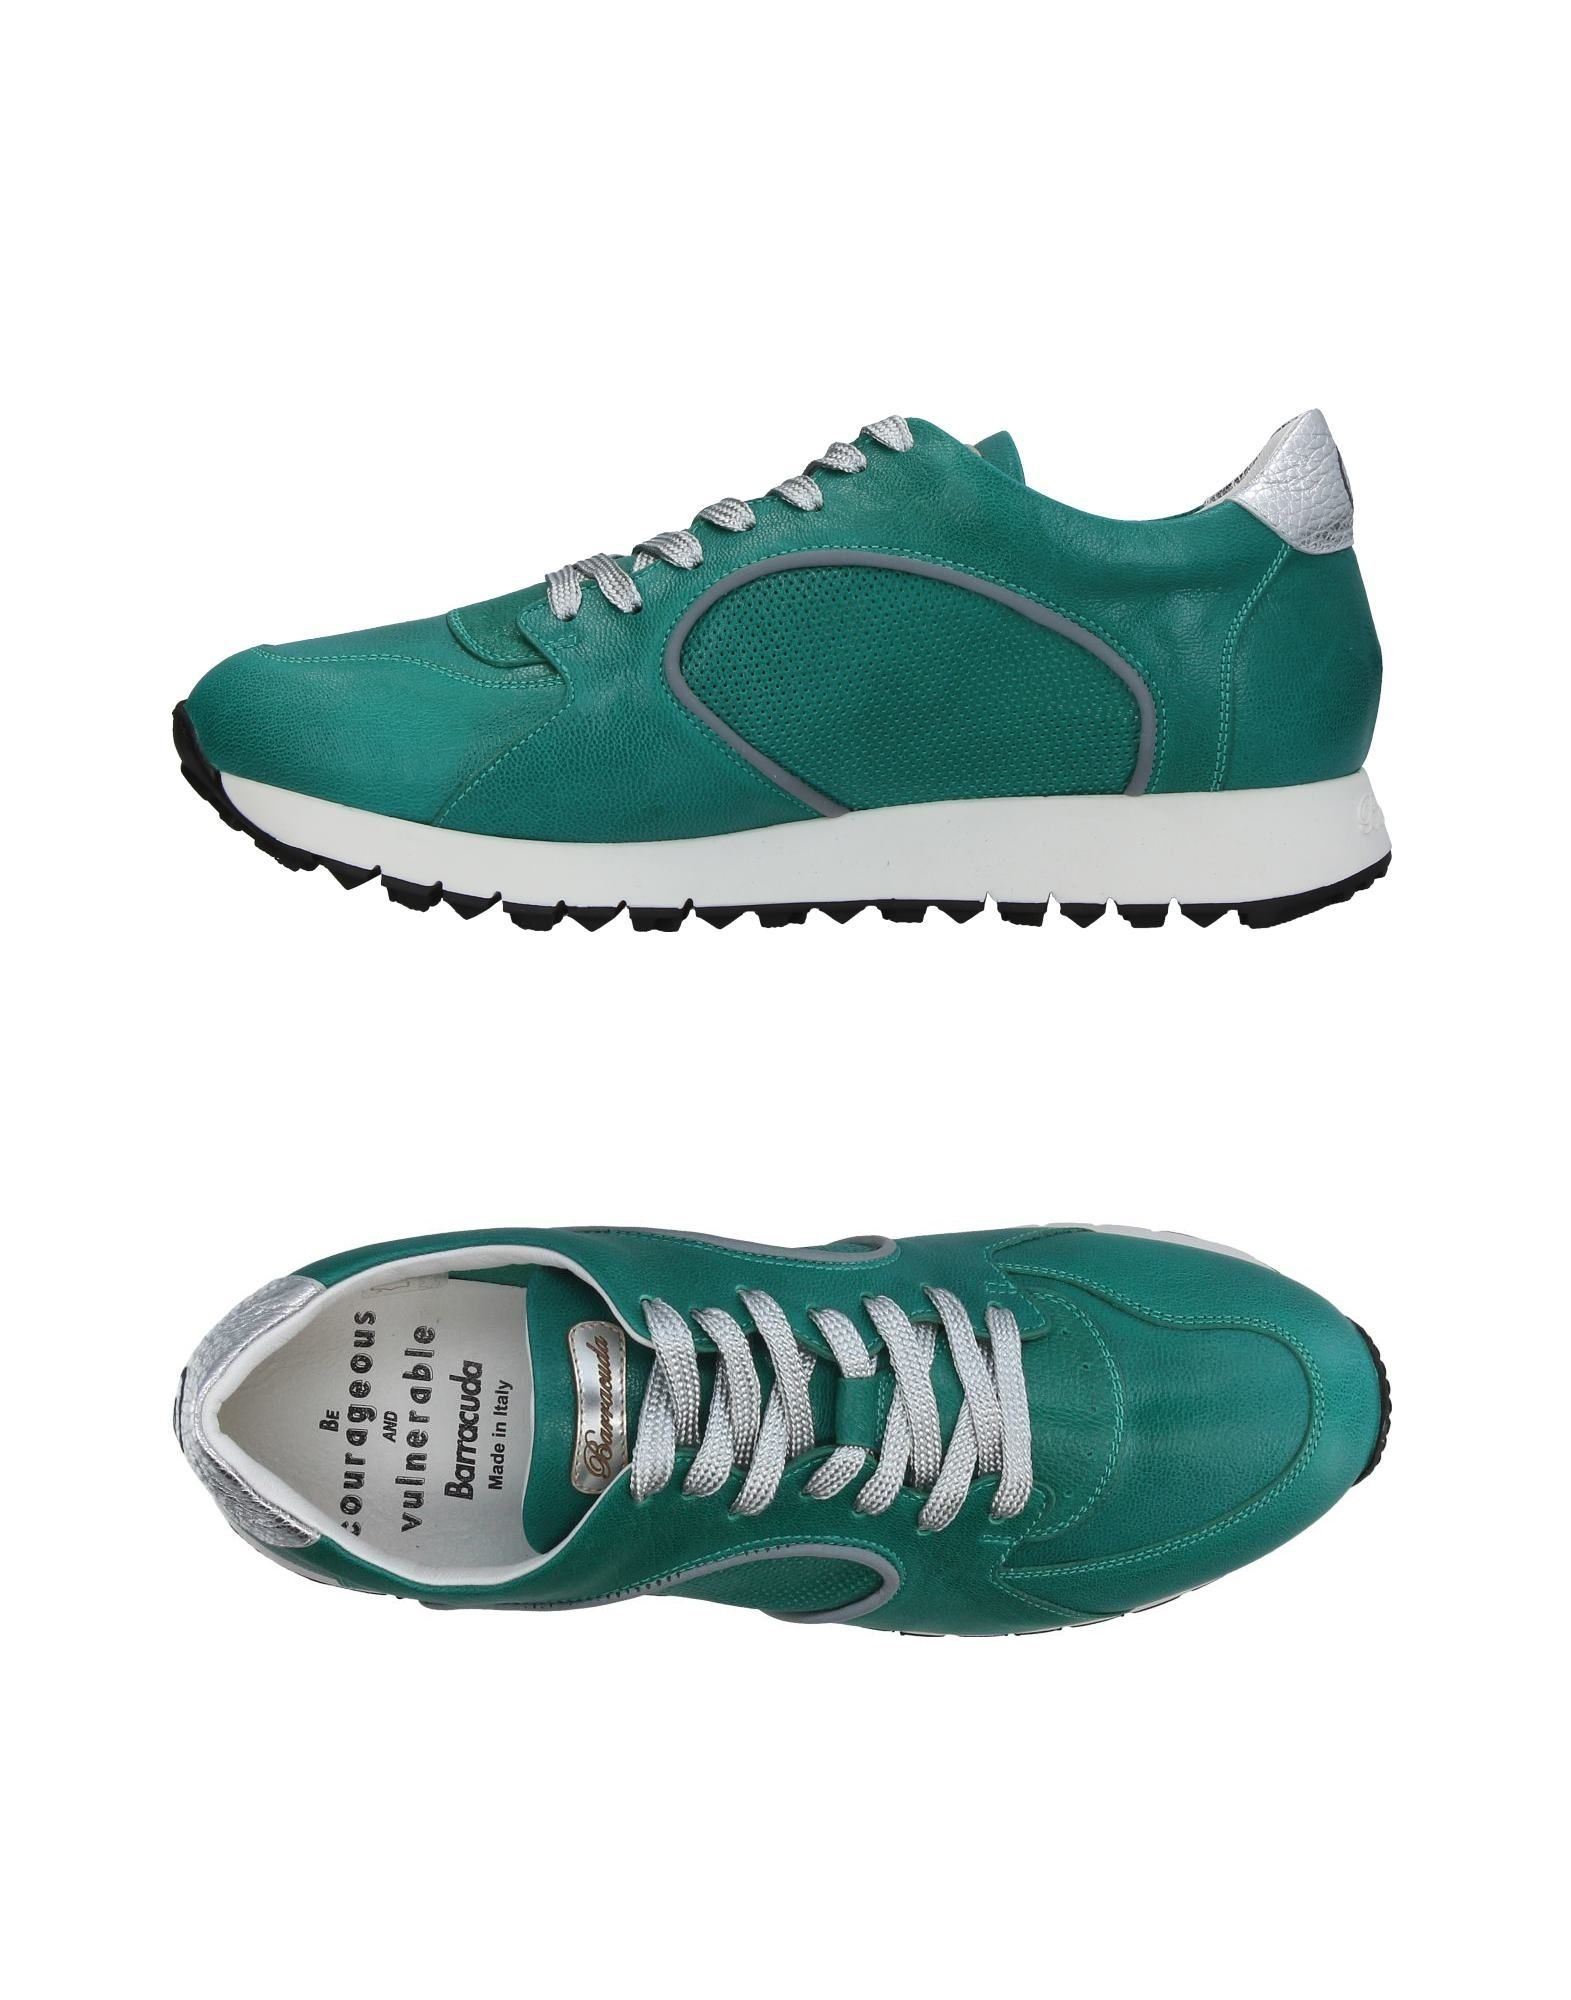 Sneakers Barracuda Uomo - Acquista online su